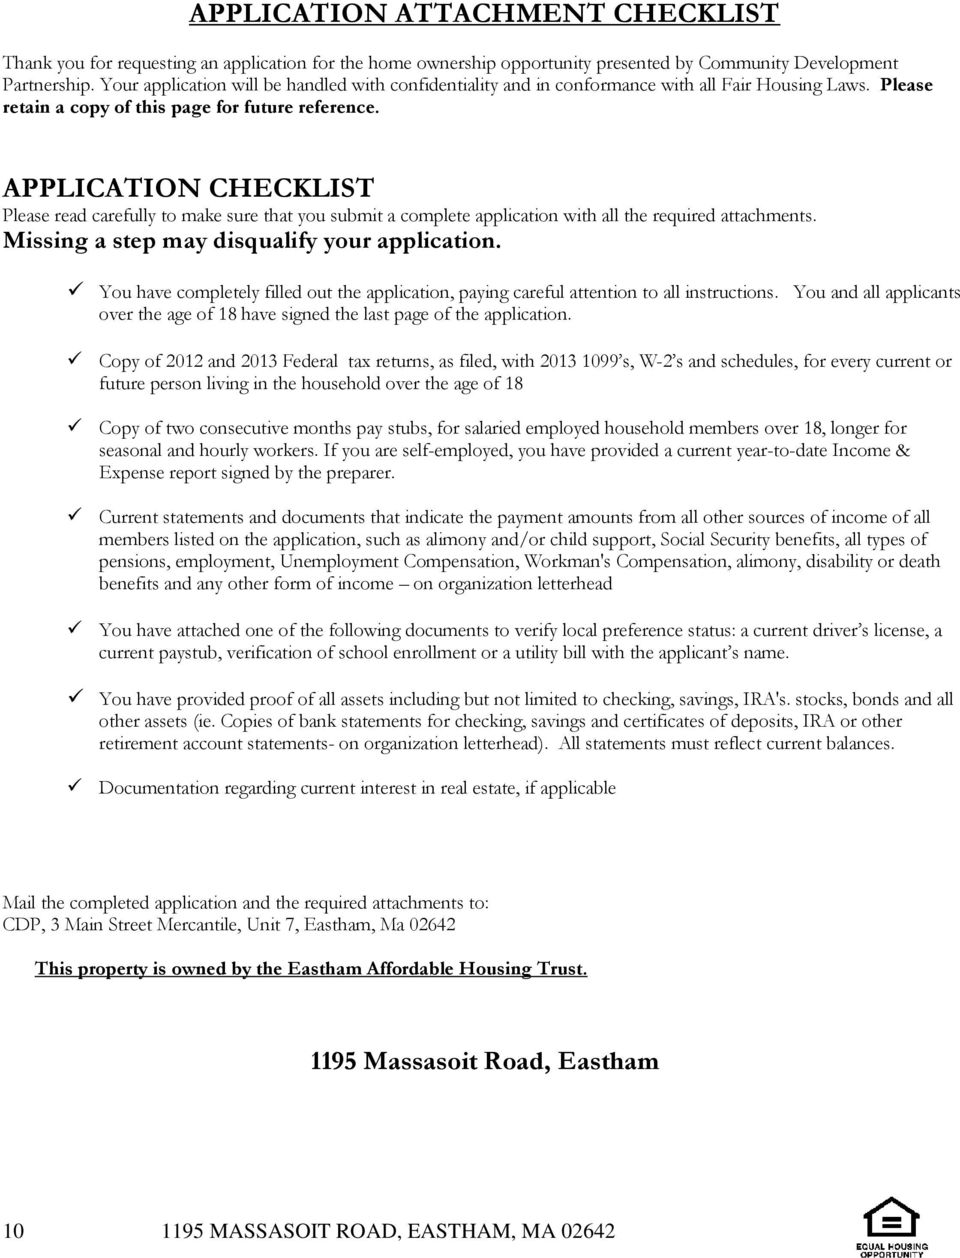 APPLICATION CHECKLIST Please read carefully to make sure that you submit a complete application with all the required attachments. Missing a step may disqualify your application.